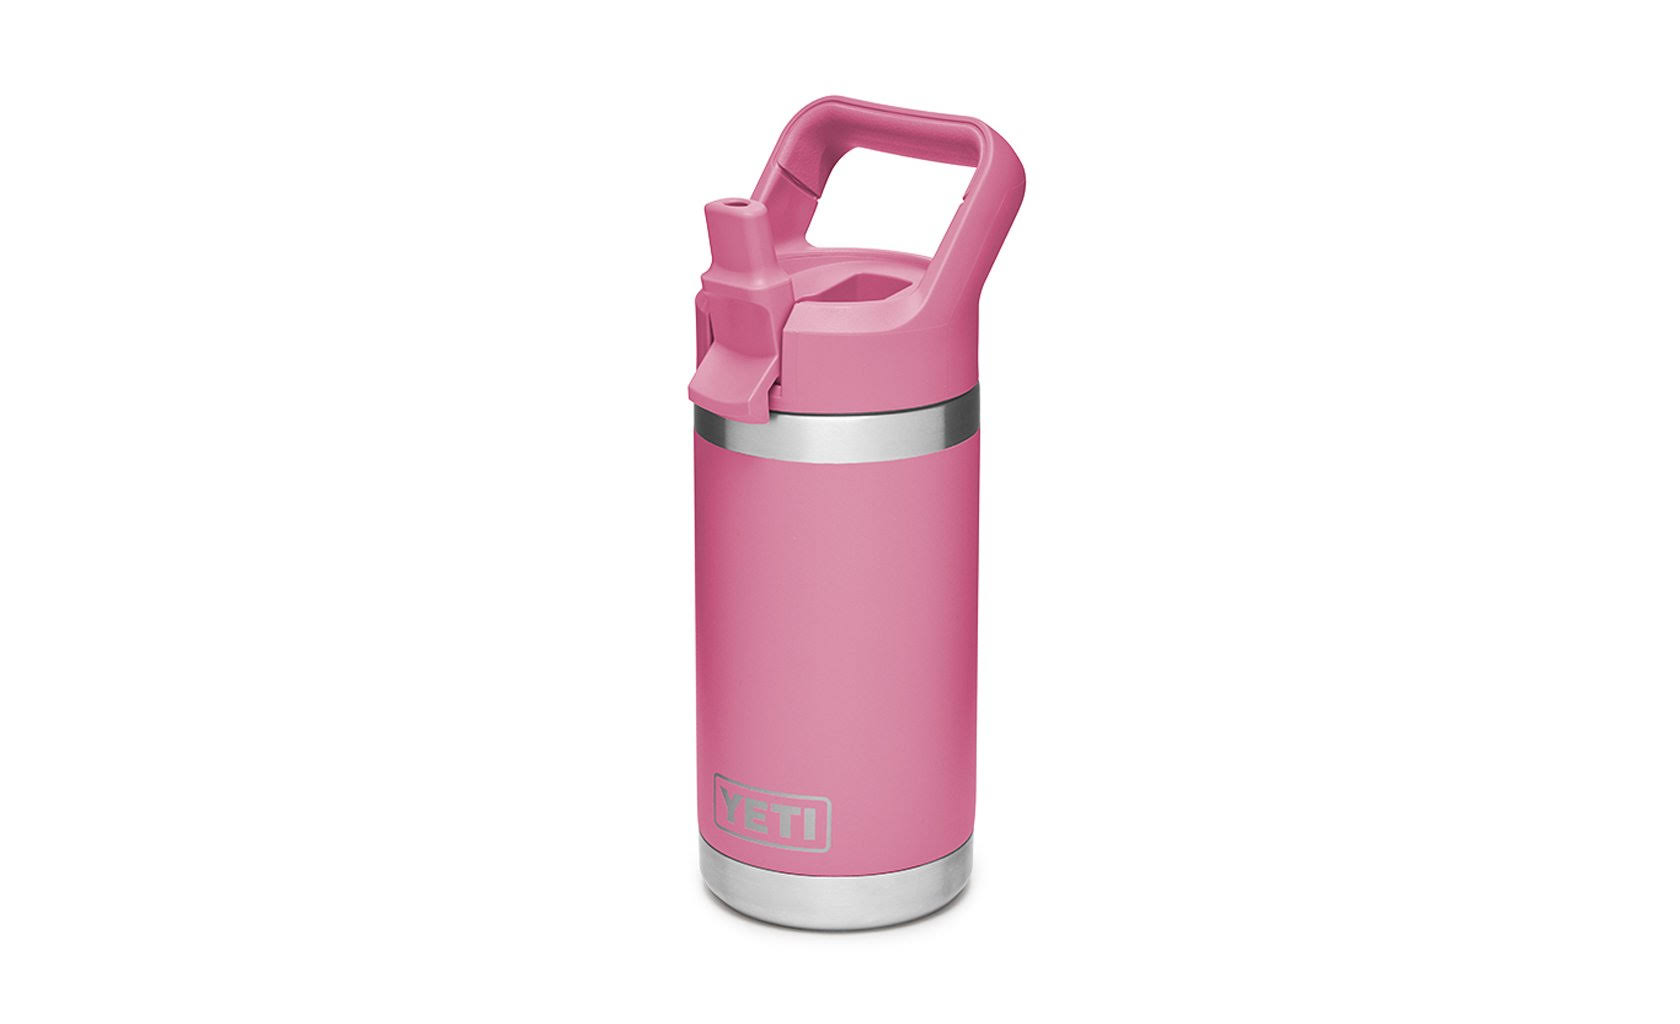 Yeti Kids Rambler Bottle - Harbor Pink, 12oz